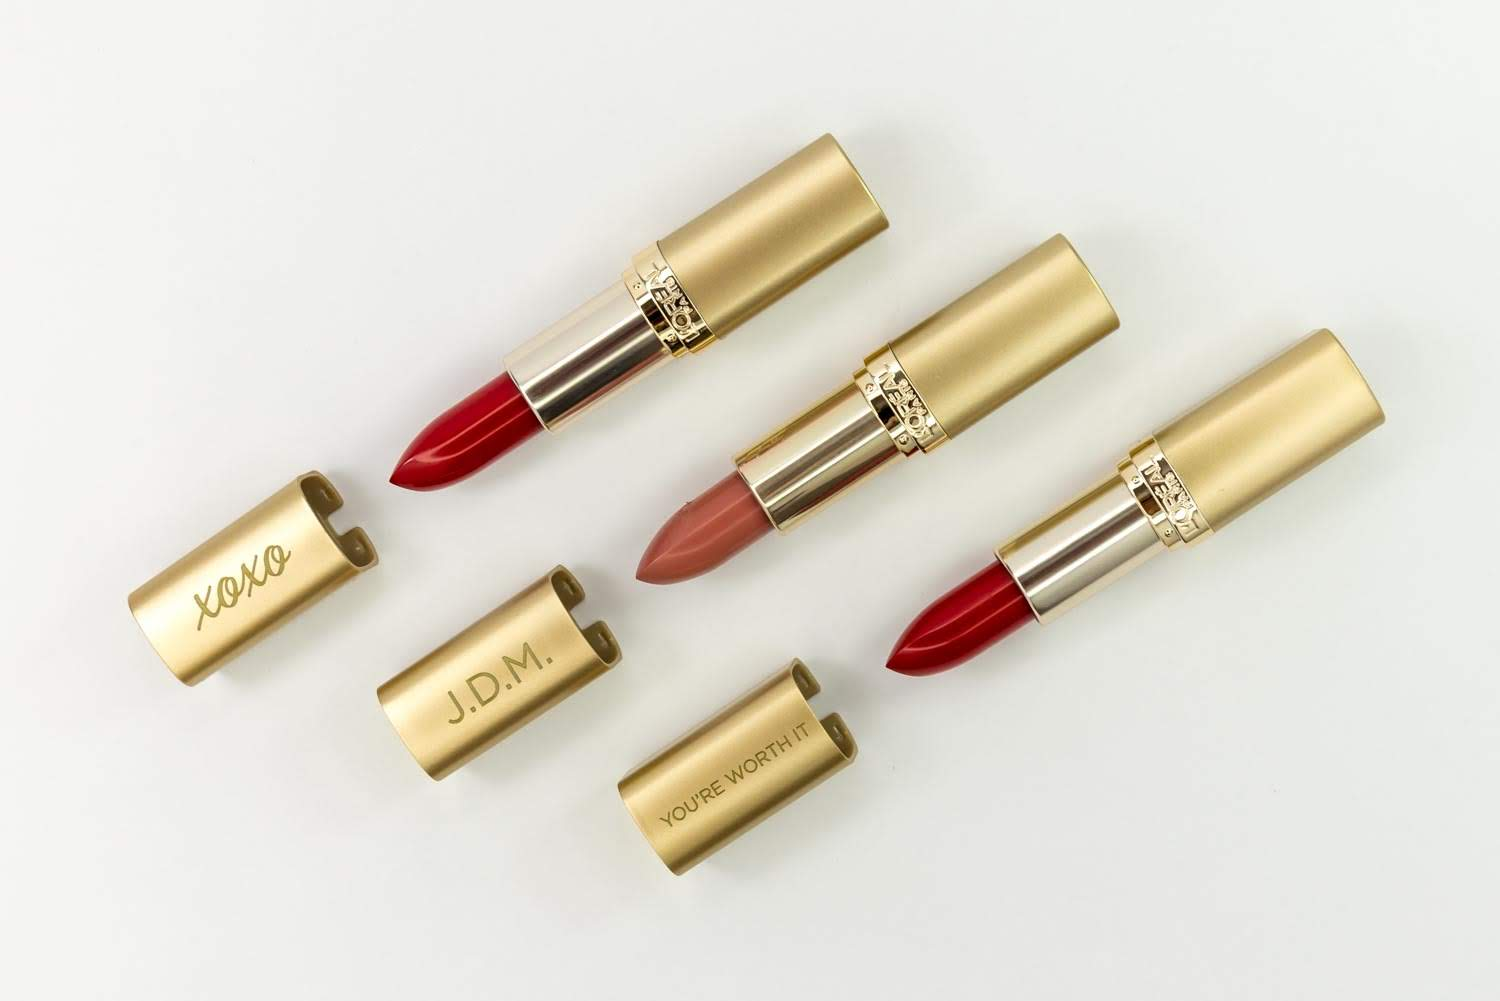 Engraved Lipsticks.jpg